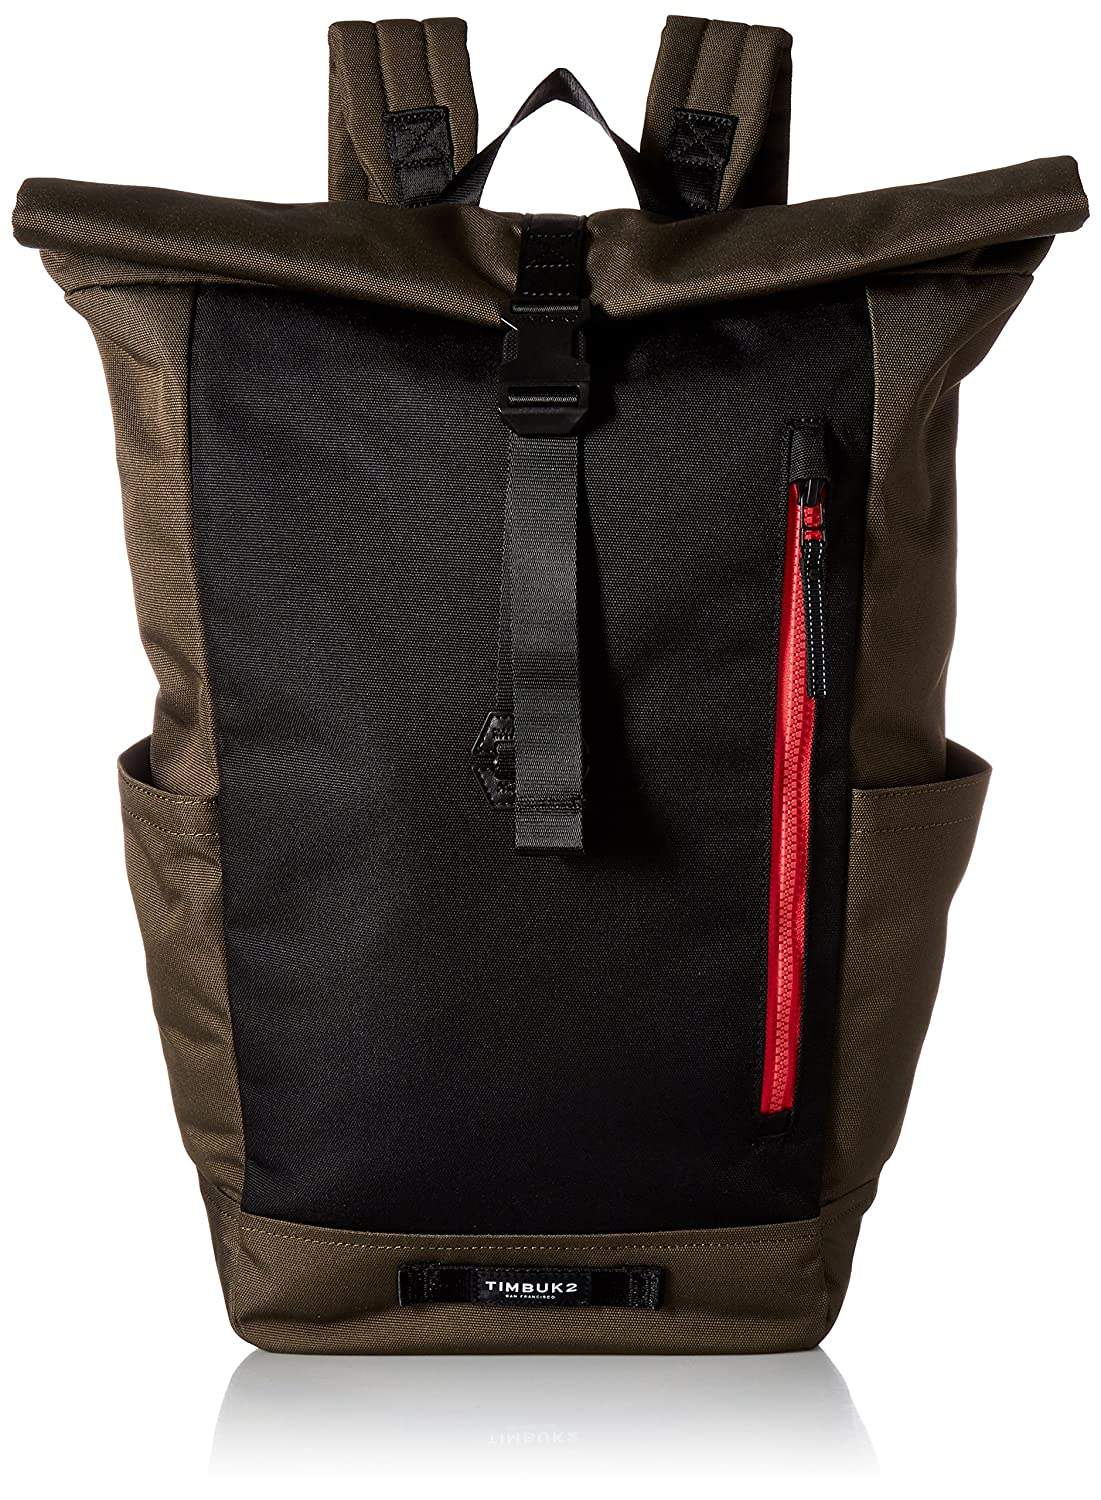 Timbuk2 Tuck Pack Black One Size 1010